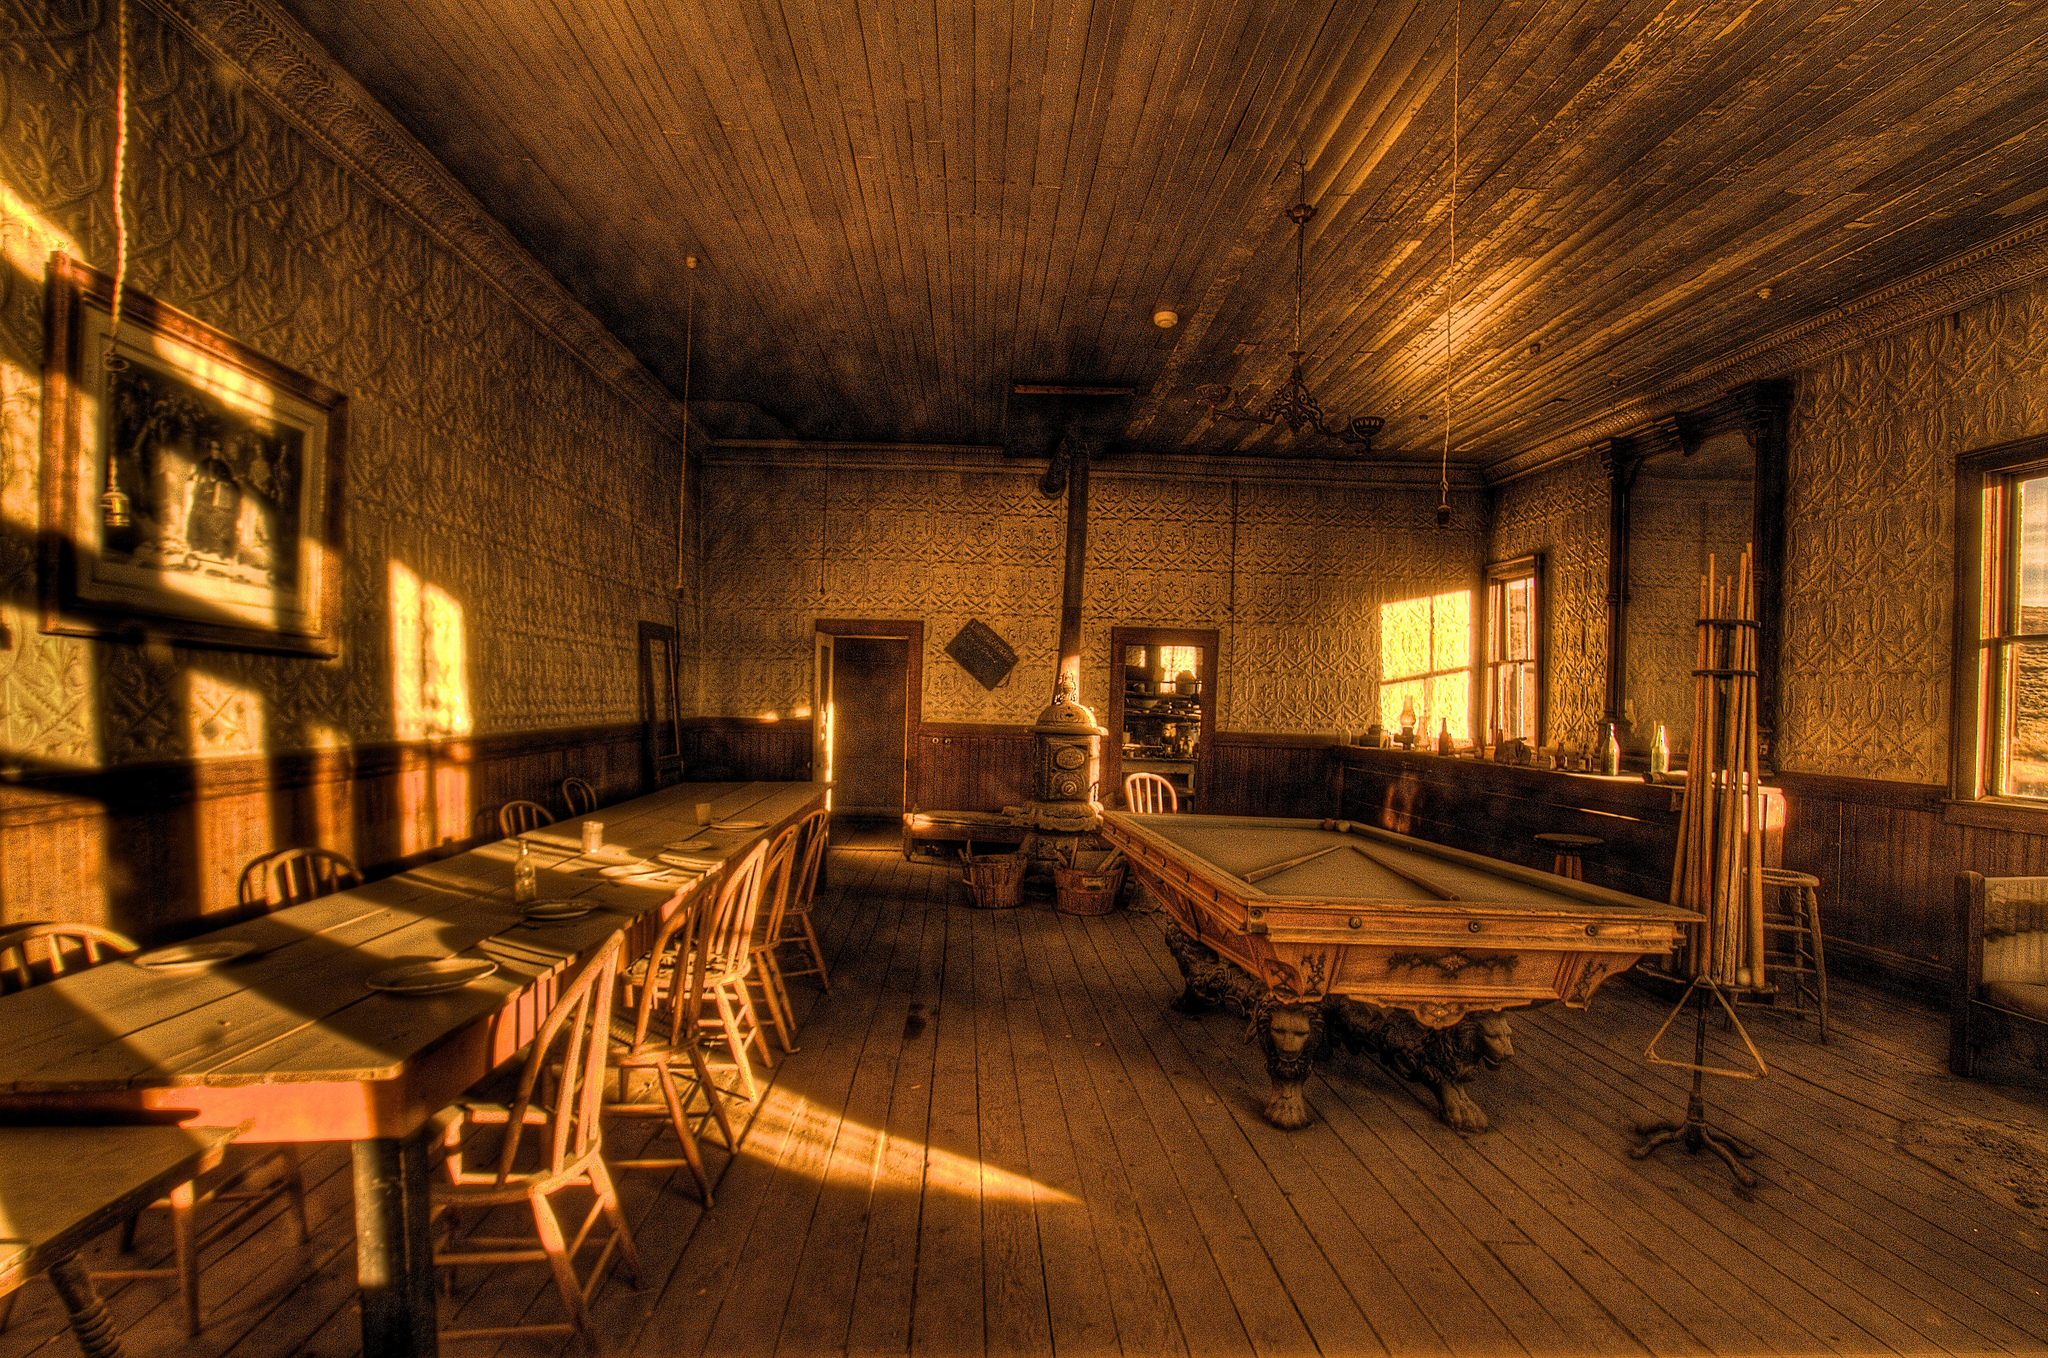 old fashioned pool hall lit up by the sun and made to look golden in the sunset